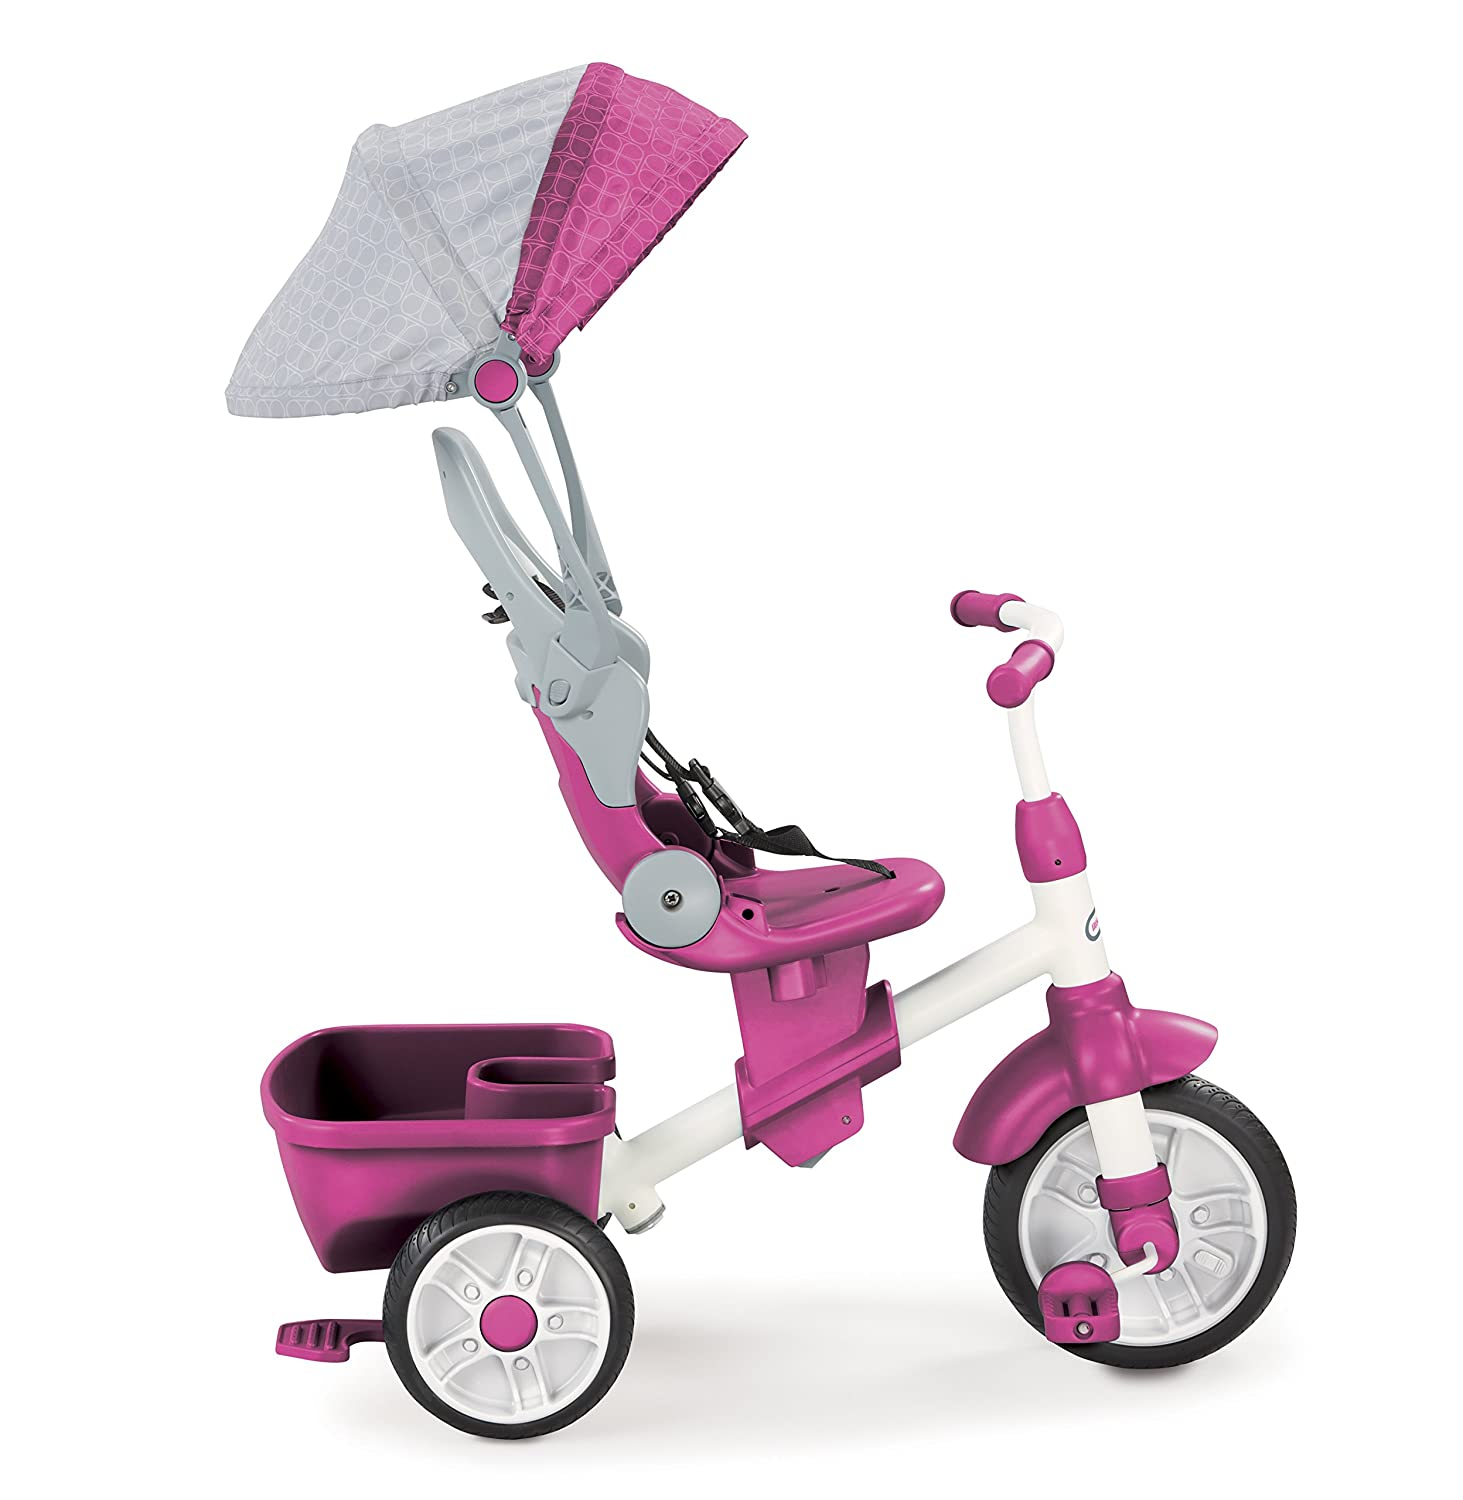 sc 1 st  Amazon.com & Amazon.com: Little Tikes Perfect Fit 4-in-1 Trike Pink: Toys u0026 Games islam-shia.org